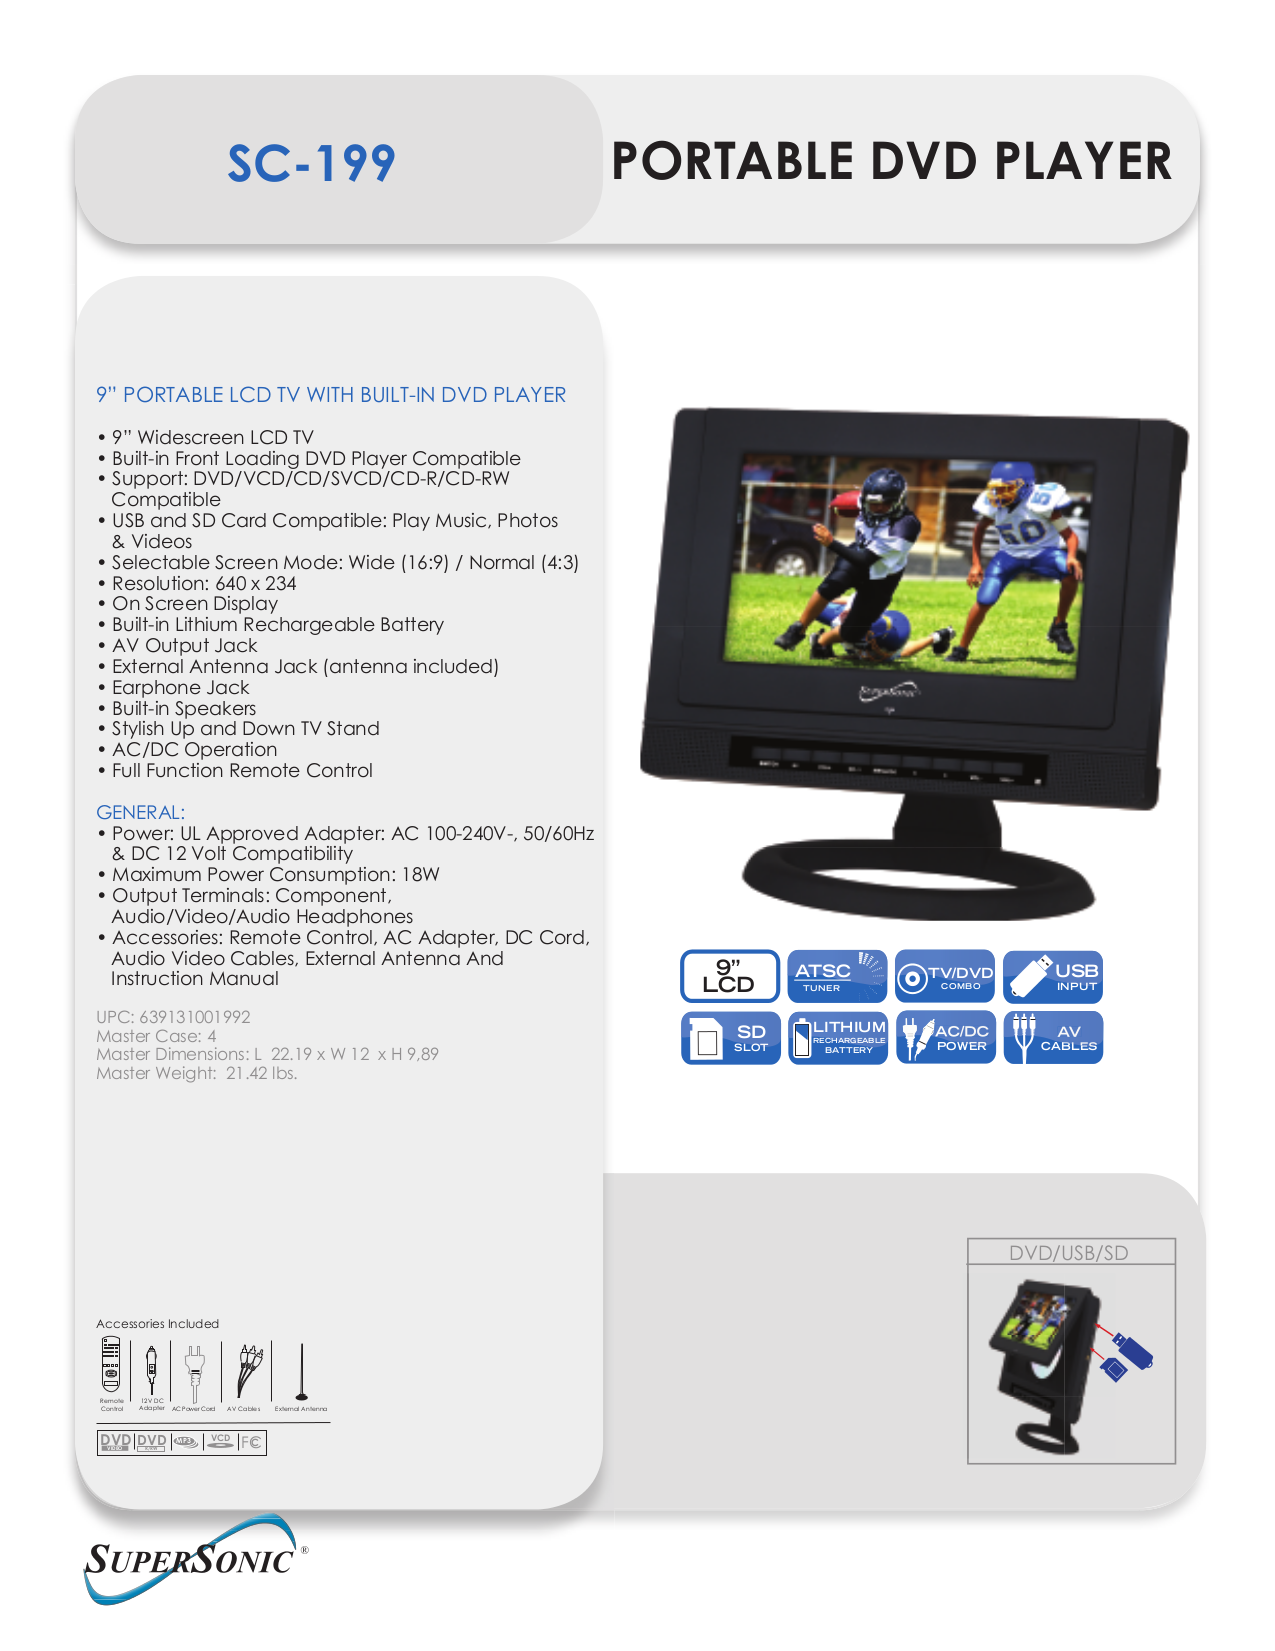 pdf for Supersonic Portable DVD Player SC-199 manual